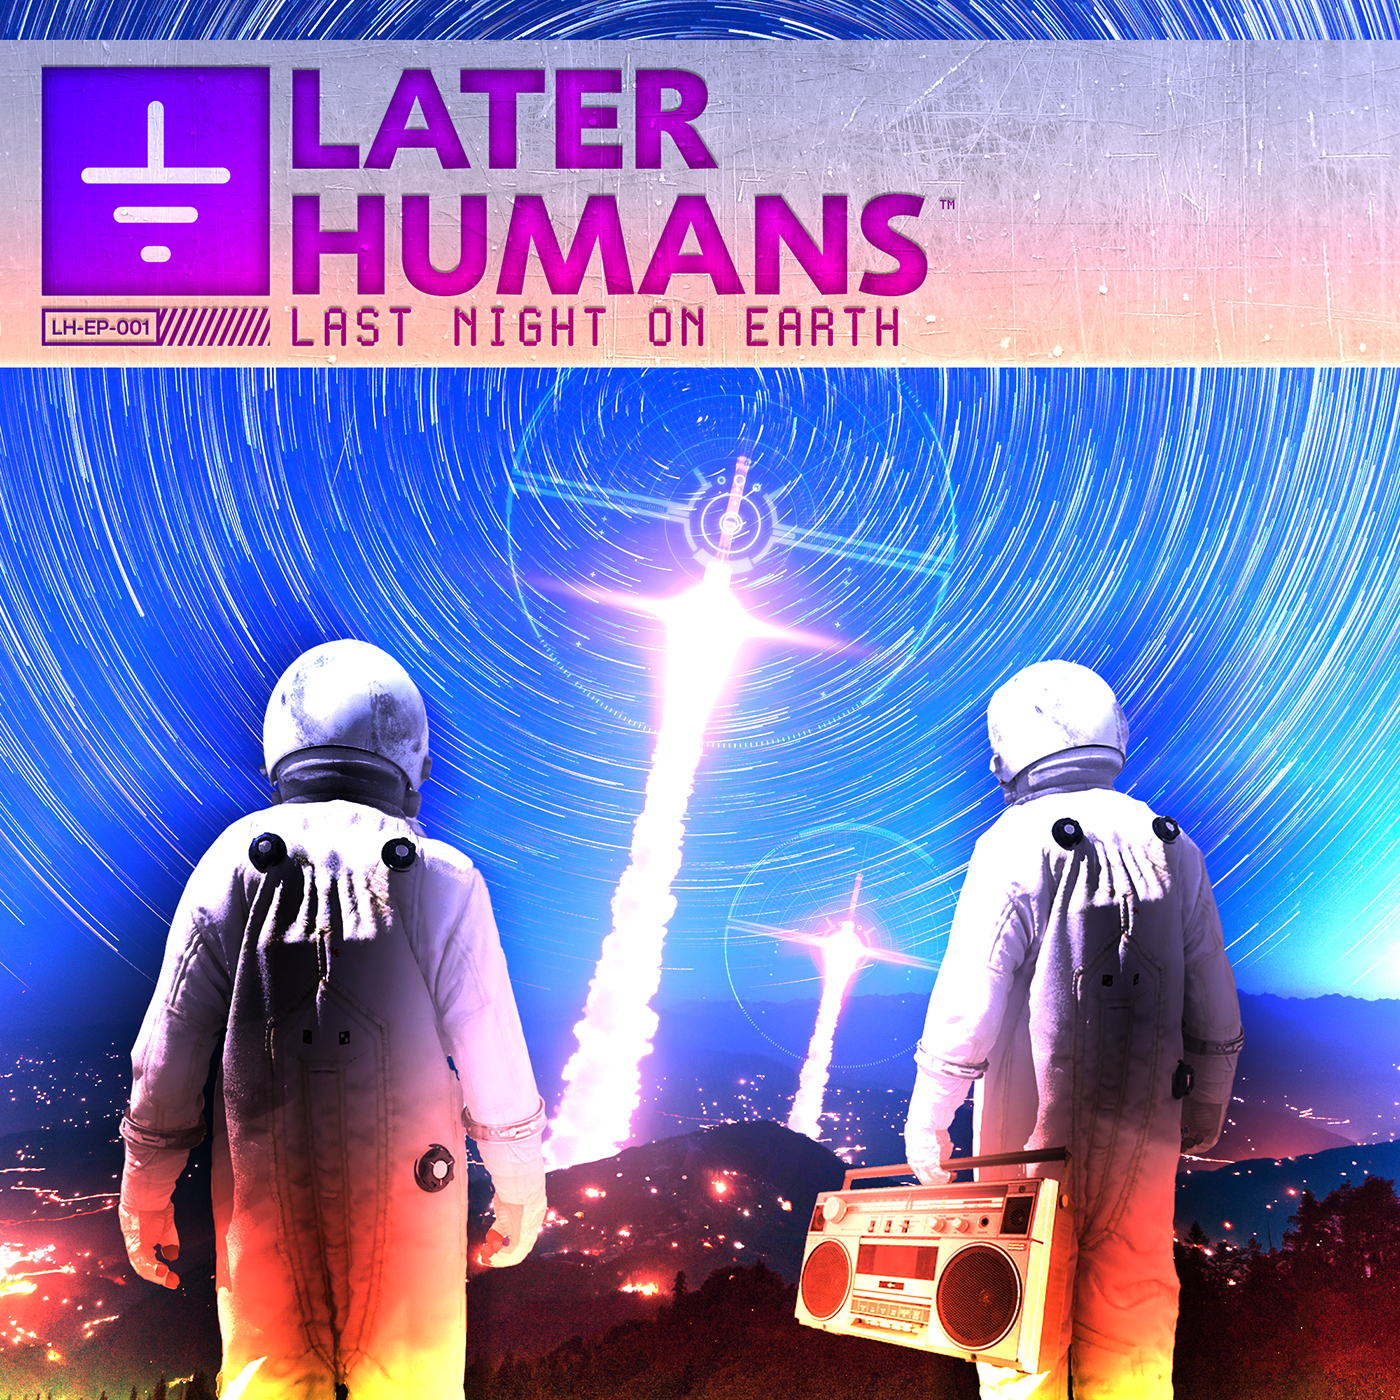 """Later Humans' """"Last Night On Earth"""" EP cover"""